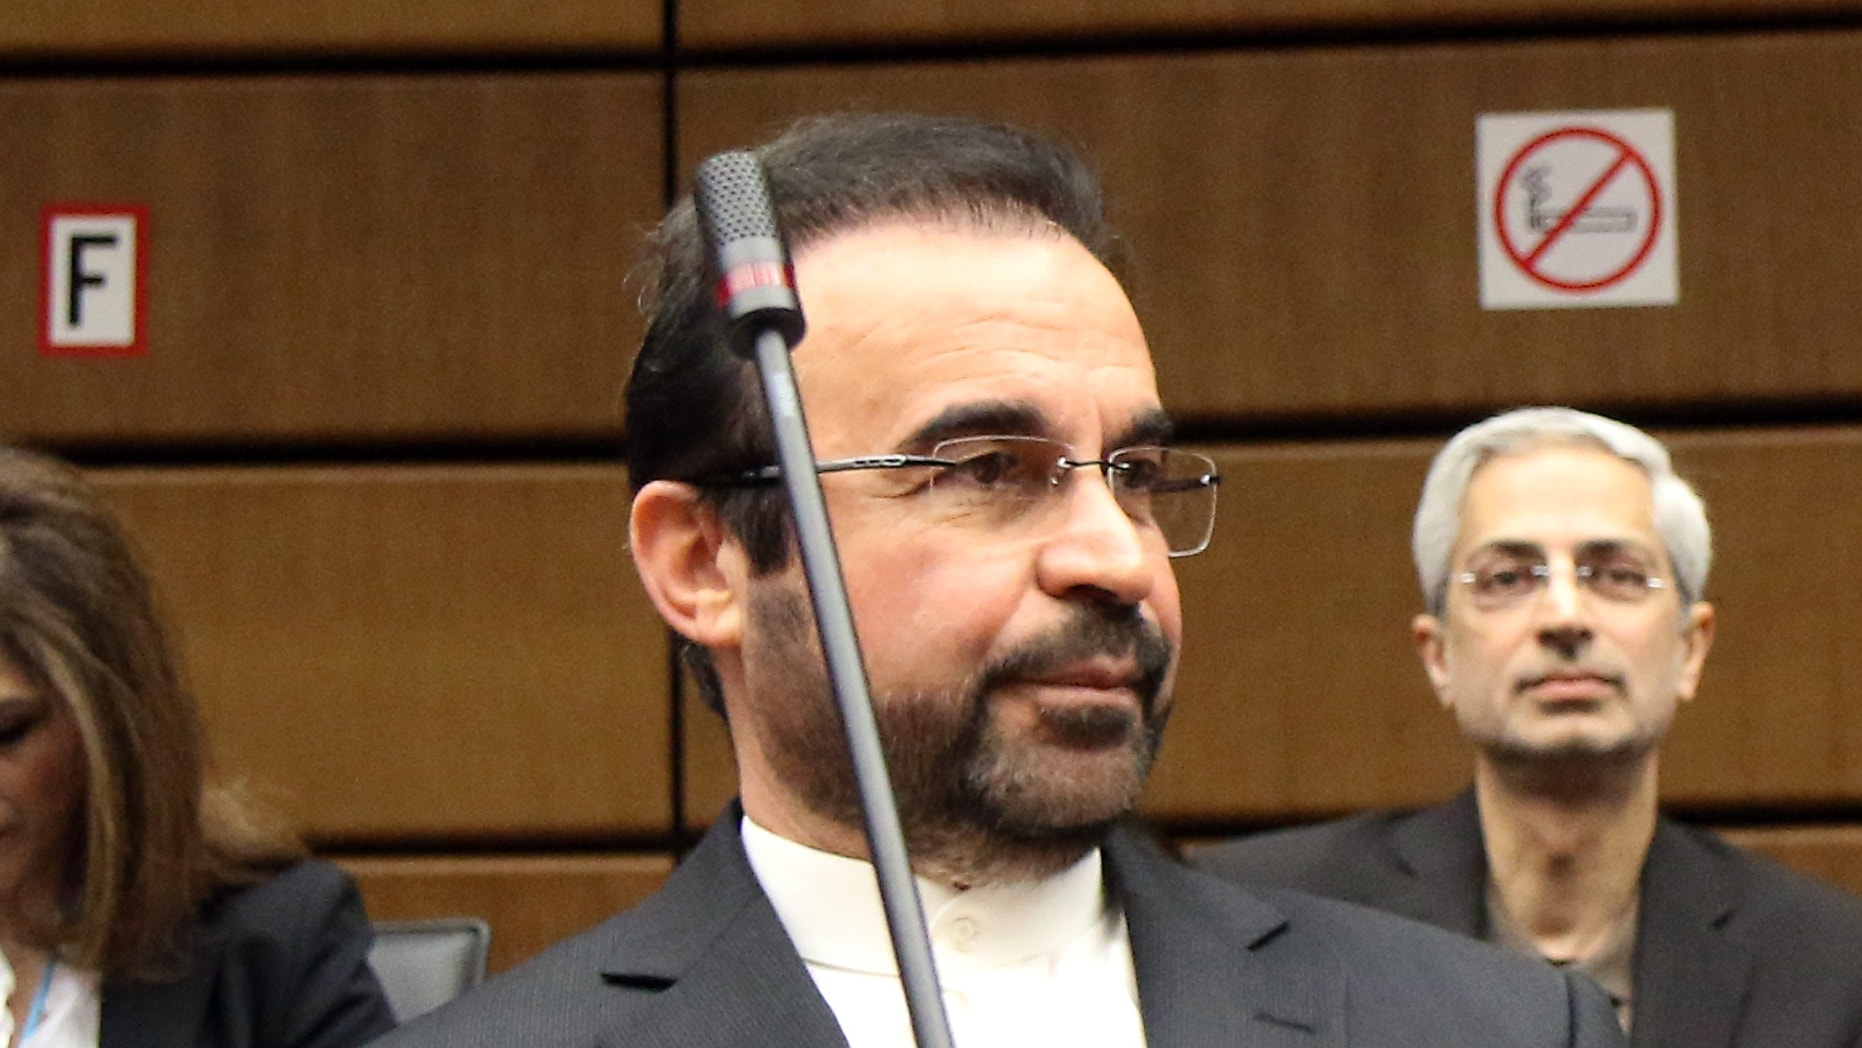 March 3, 2014 - Iran's Ambassador to the International Atomic Energy Agency, IAEA, Reza Najafi waits for the start of the IAEA board of governors meeting at the International Center in Vienna, Austria. The head of the U.N. nuclear agency says Iran has cut its stock of uranium that is closest to atomic weapons-grade. Under an interim deal with six world powers, Iran is to dilute half of its 20-percent-enriched uranium to a lower grade suitable for use as reactor fuel.